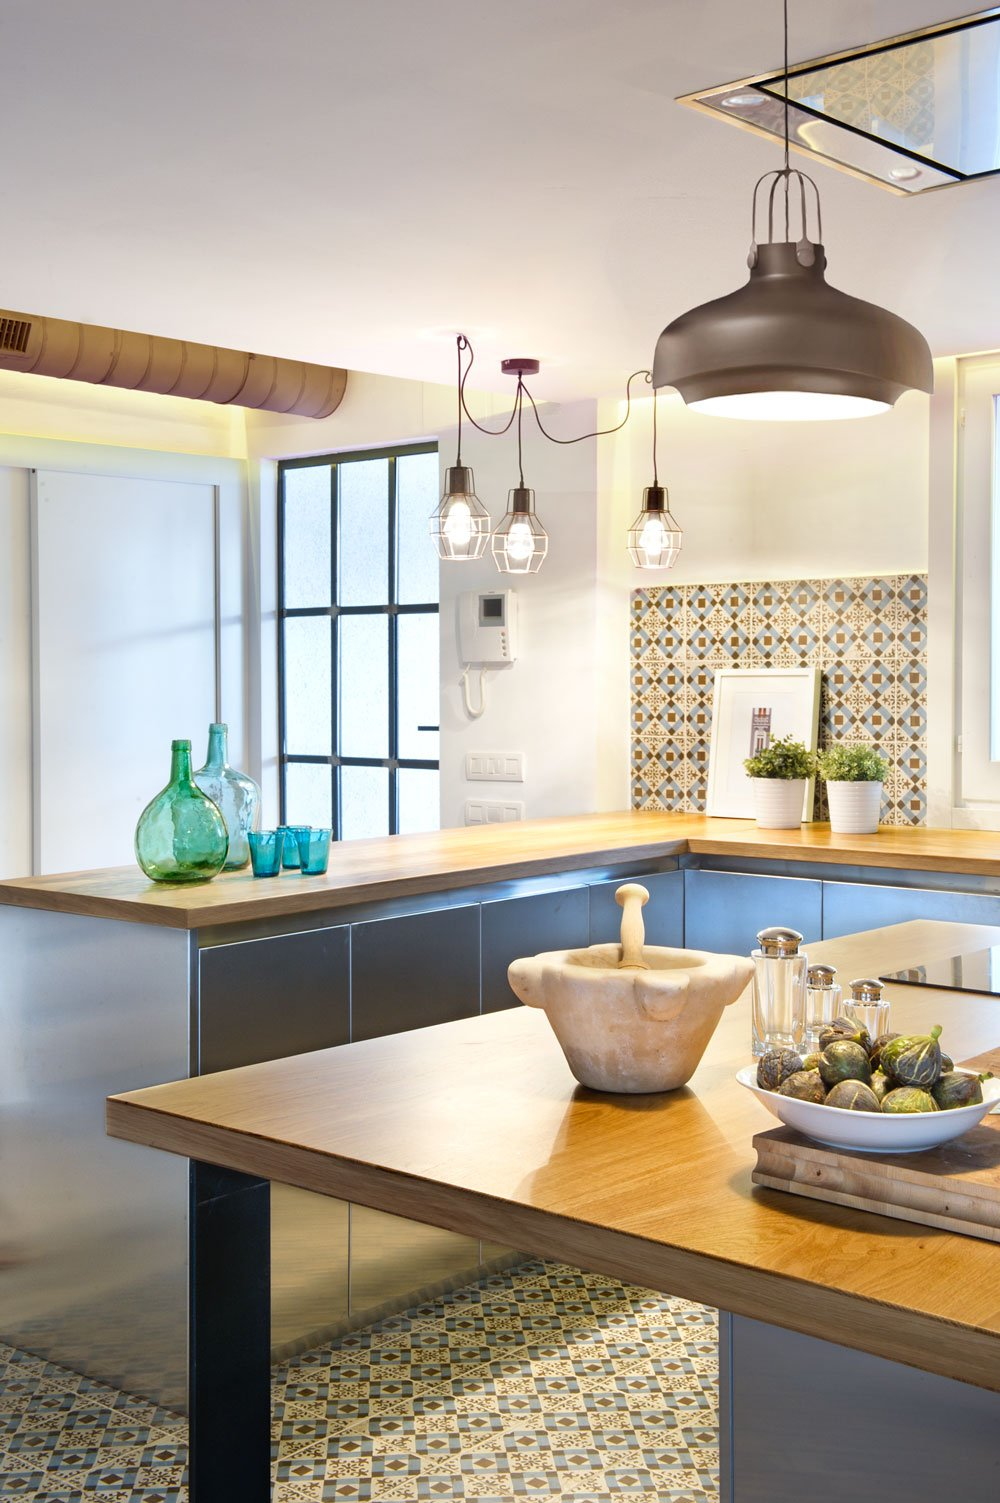 With these extra bright pendant lamps, the beauty of this kitchen is made even more visible. As you can see, the ornate tile patterns, wood top and steel cabinets are wonderfully present.